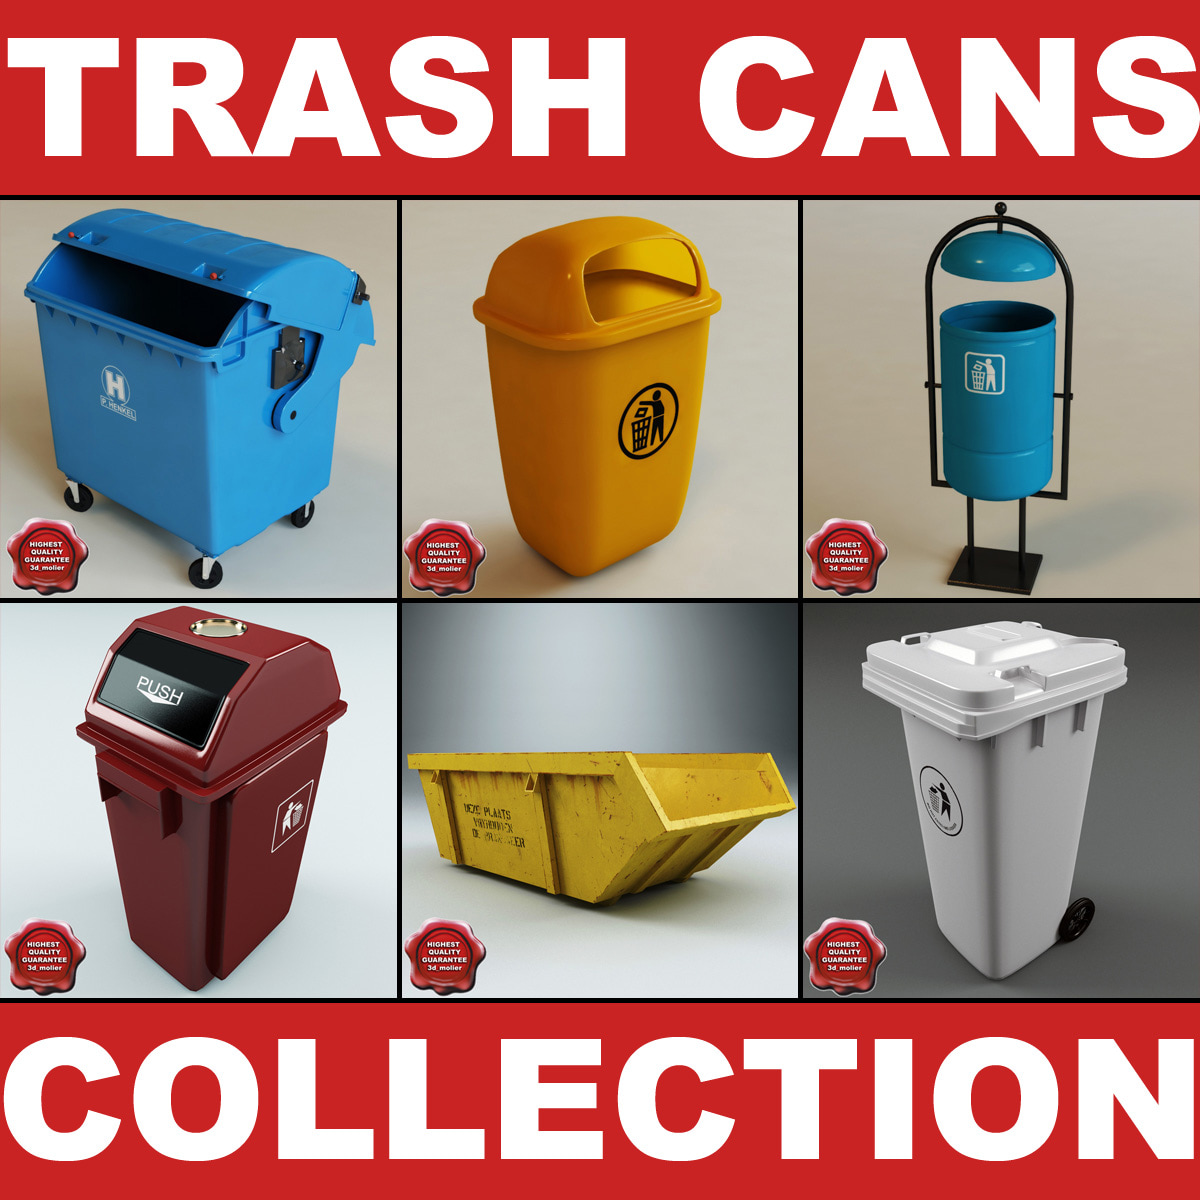 Trash_Cans_Collection_V2_000.jpg